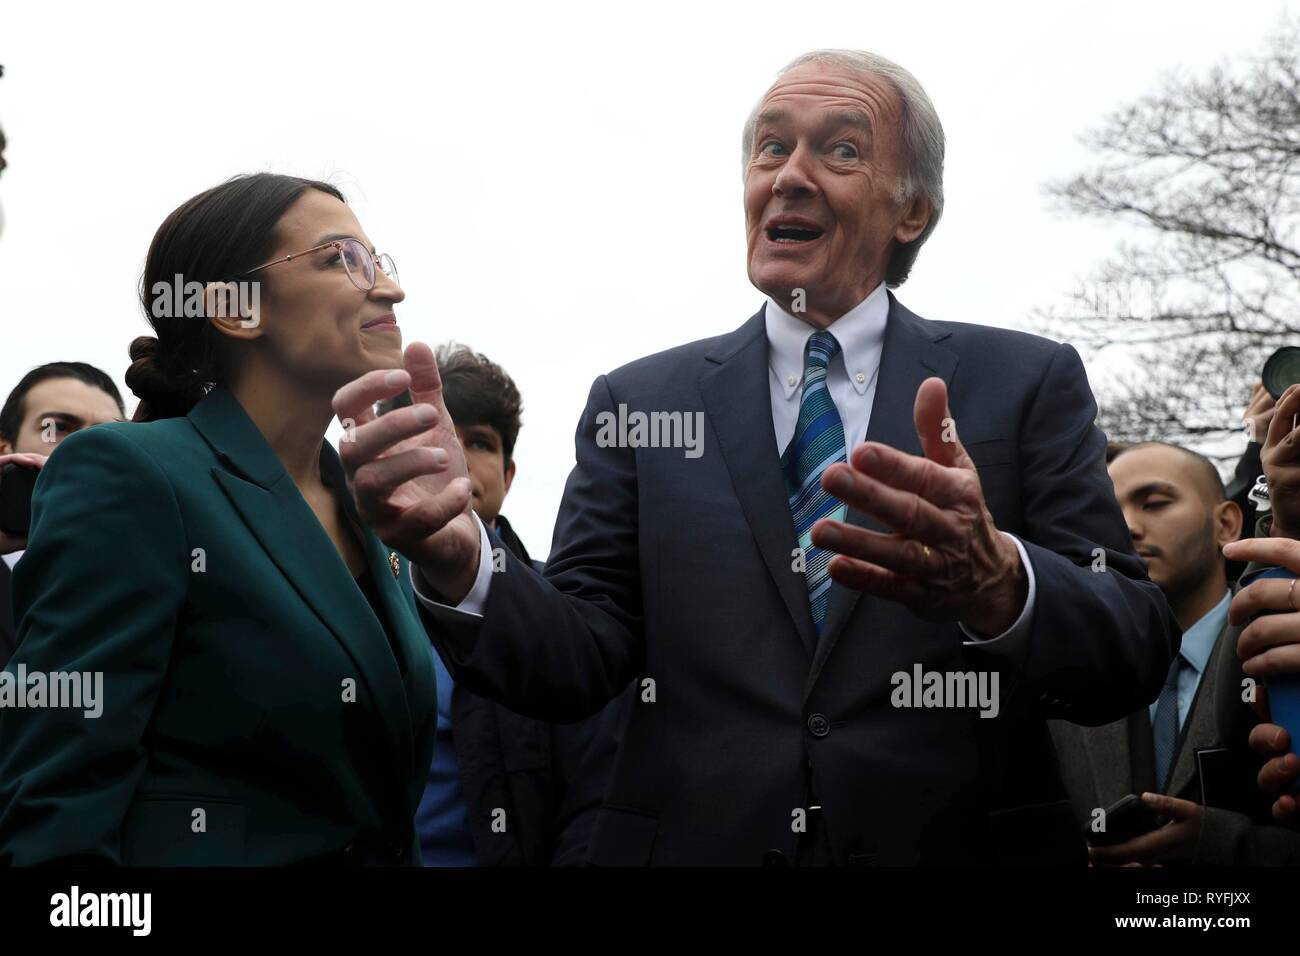 U.S. Senator Ed Markey and Rep. Alexandria Ocasio-Cortez, answers questions during the announcement for the Green New Deal legislation during a press conference outside the Capitol Building February 7, 2019 in Washington, D.C. Stock Photo